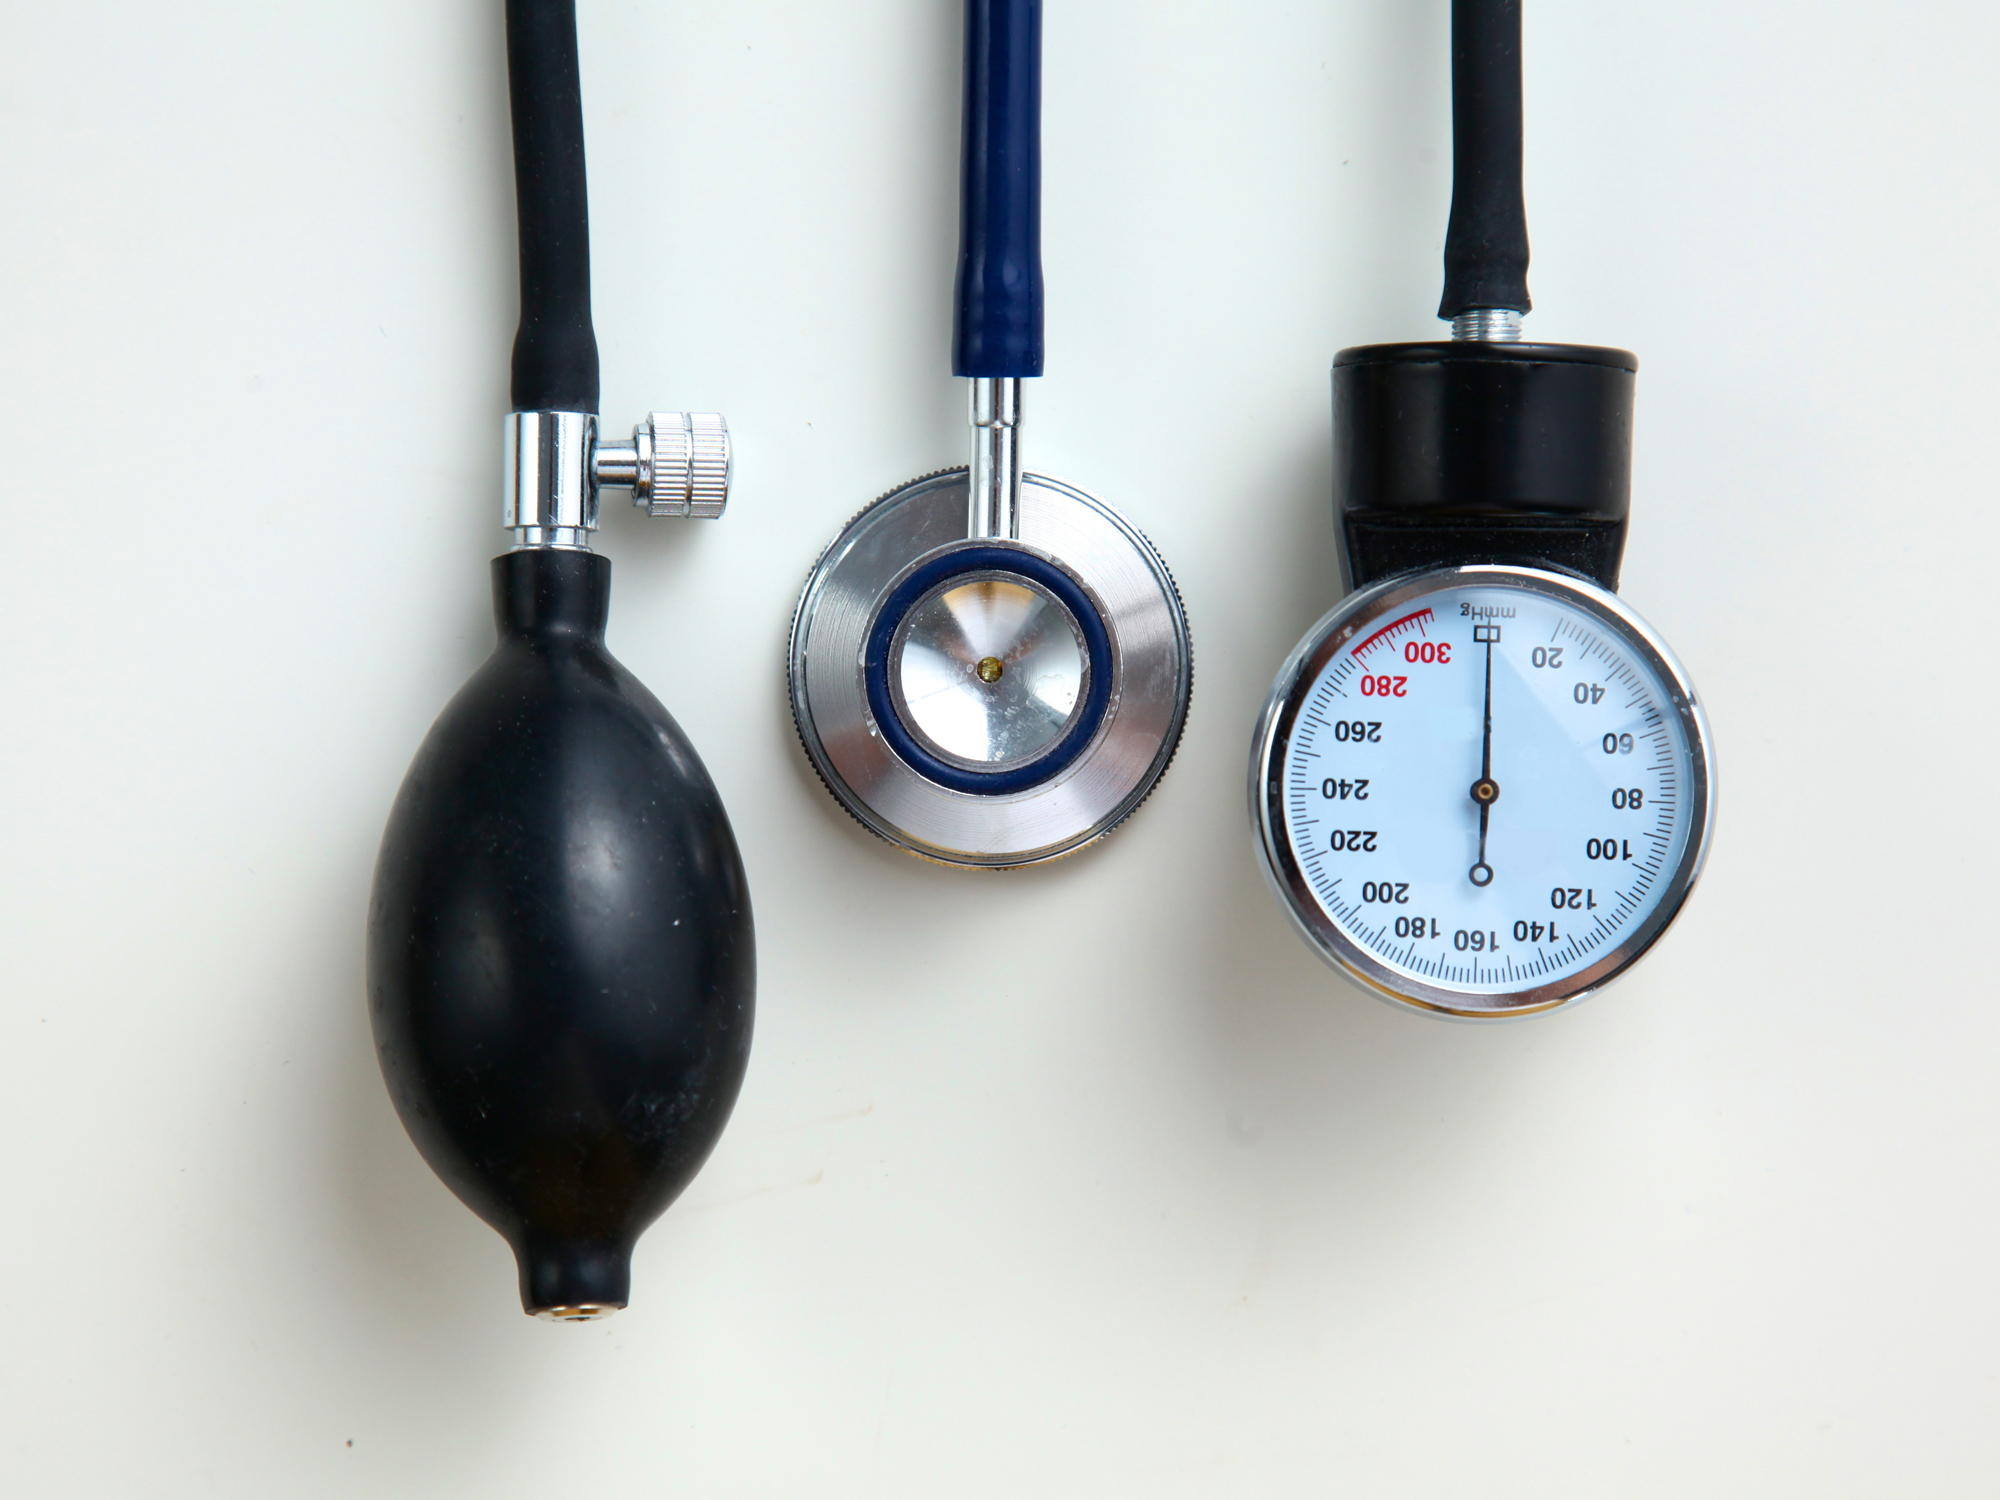 19 alternatives for naturally healthy blood pressure